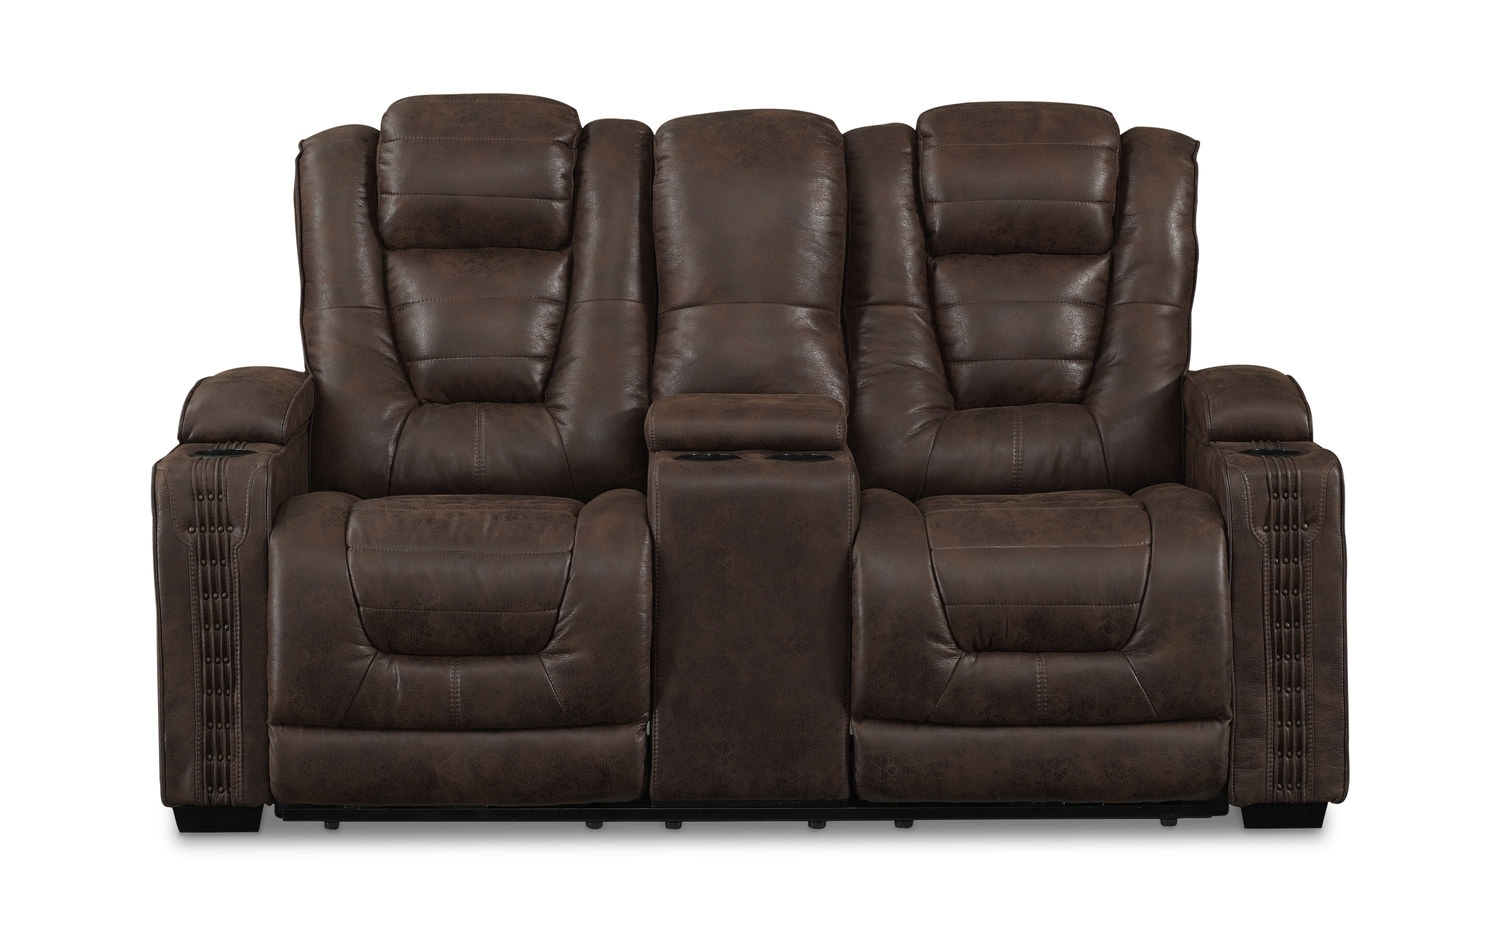 Morph Power Reclining Loveseat With Console | Hom Furniture For Denali Light Grey 6 Piece Reclining Sectionals With 2 Power Headrests (Image 16 of 25)